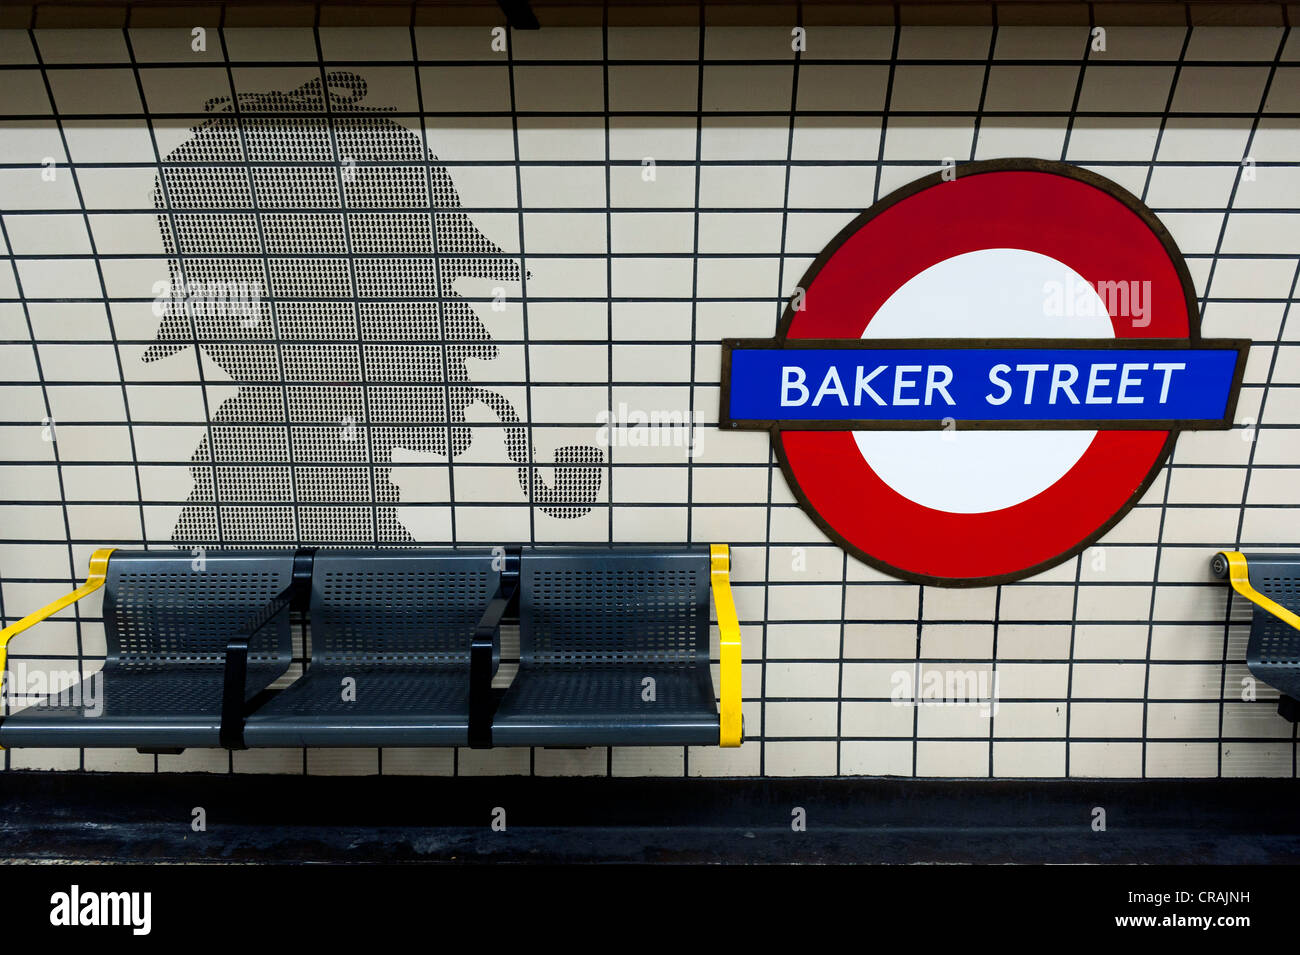 england london baker street subway stock photos england london baker street subway stock. Black Bedroom Furniture Sets. Home Design Ideas